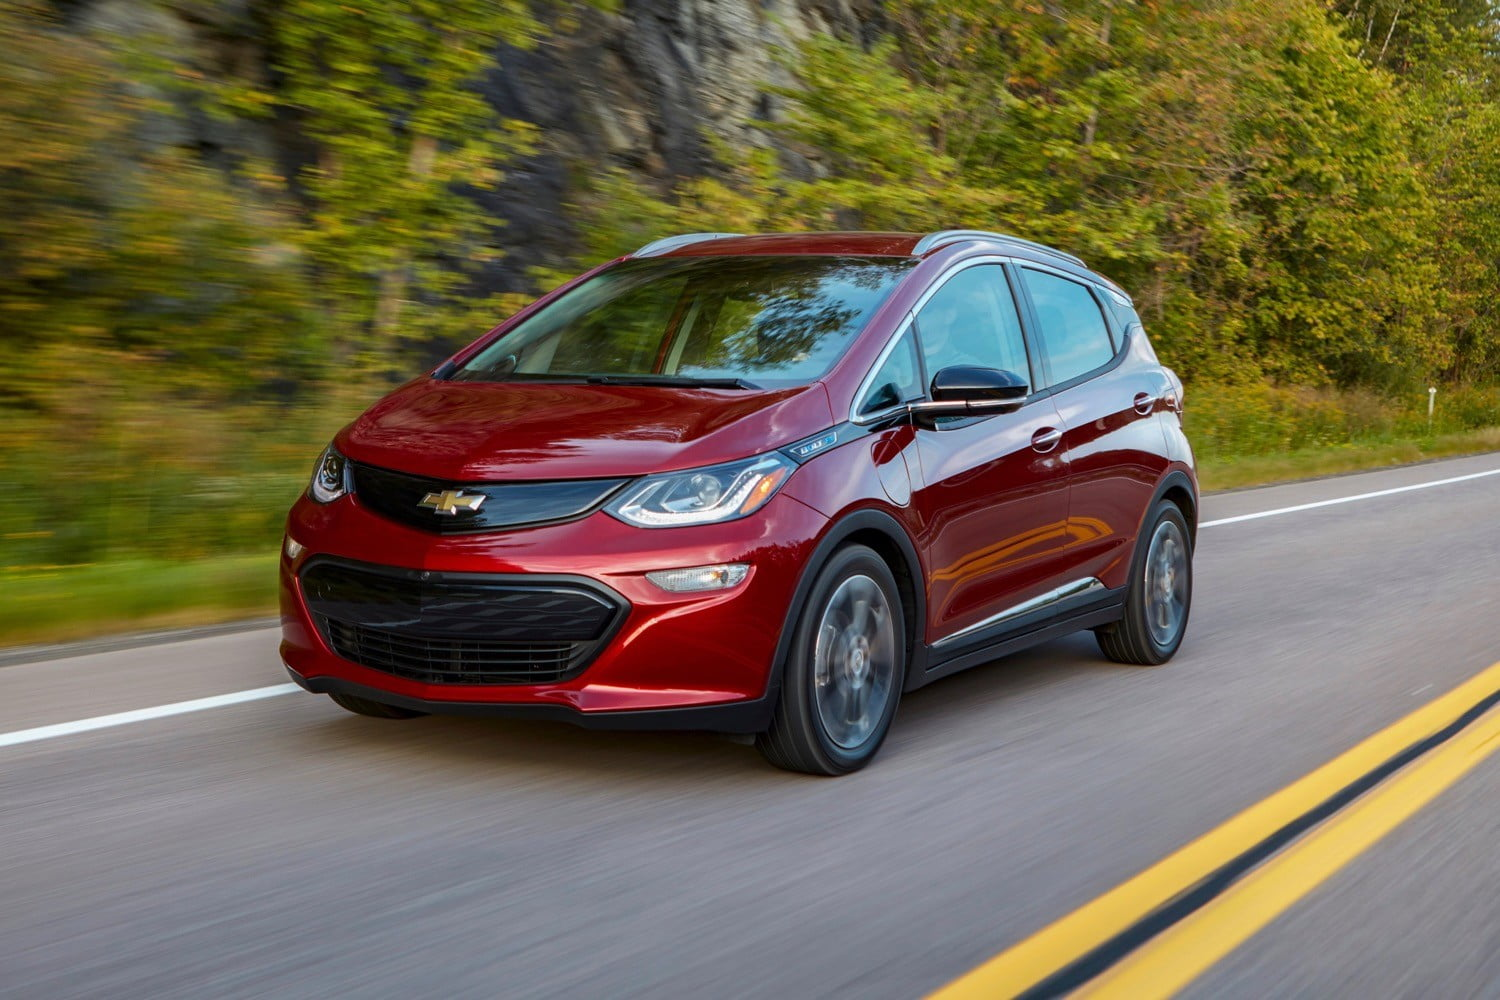 Most EV buyers have no regrets about going electric, AAA survey says